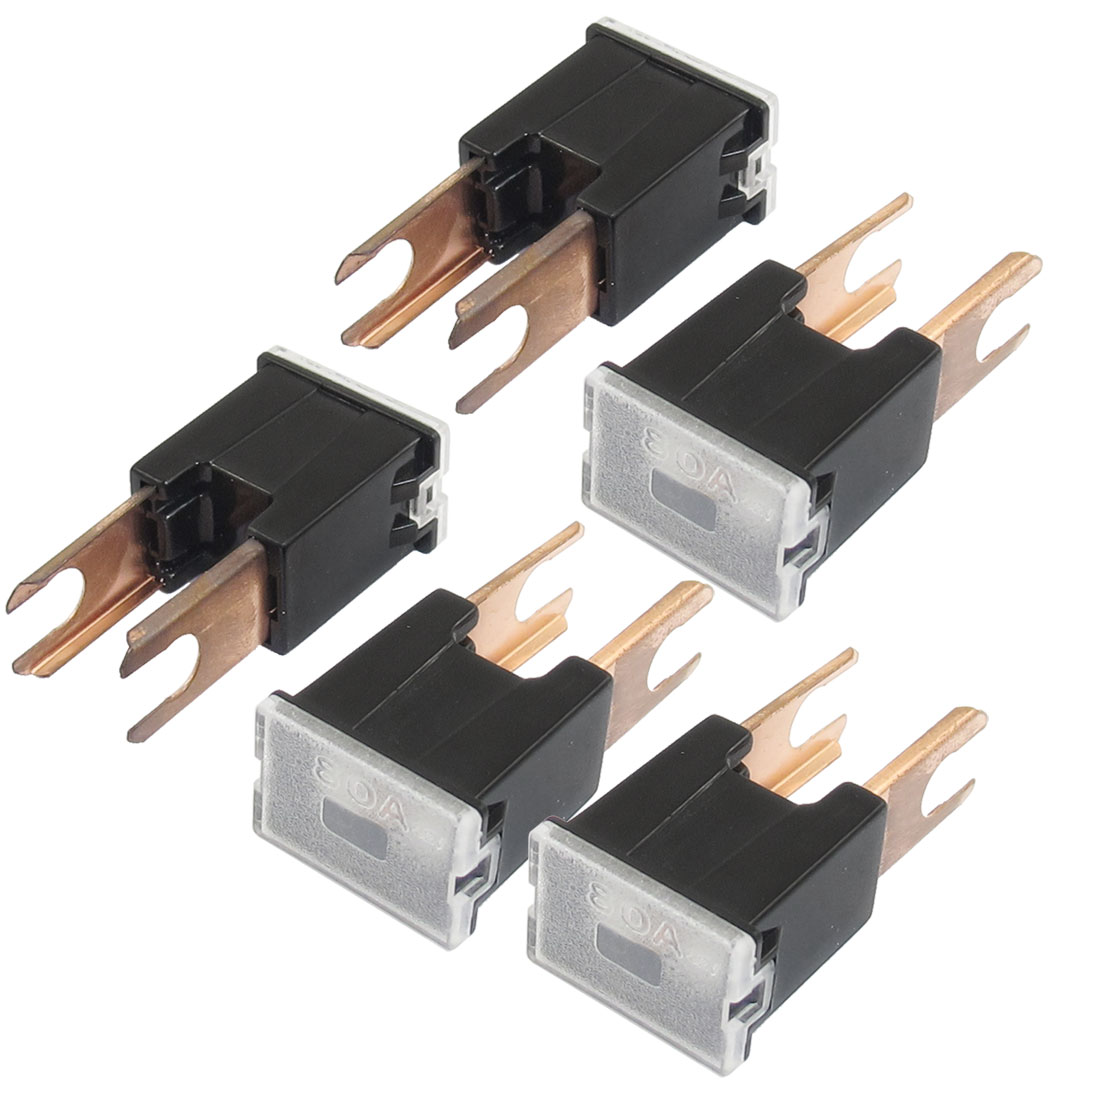 5 Pcs Auto Connecting Style 80A PAL Slow Blow Fuse Black